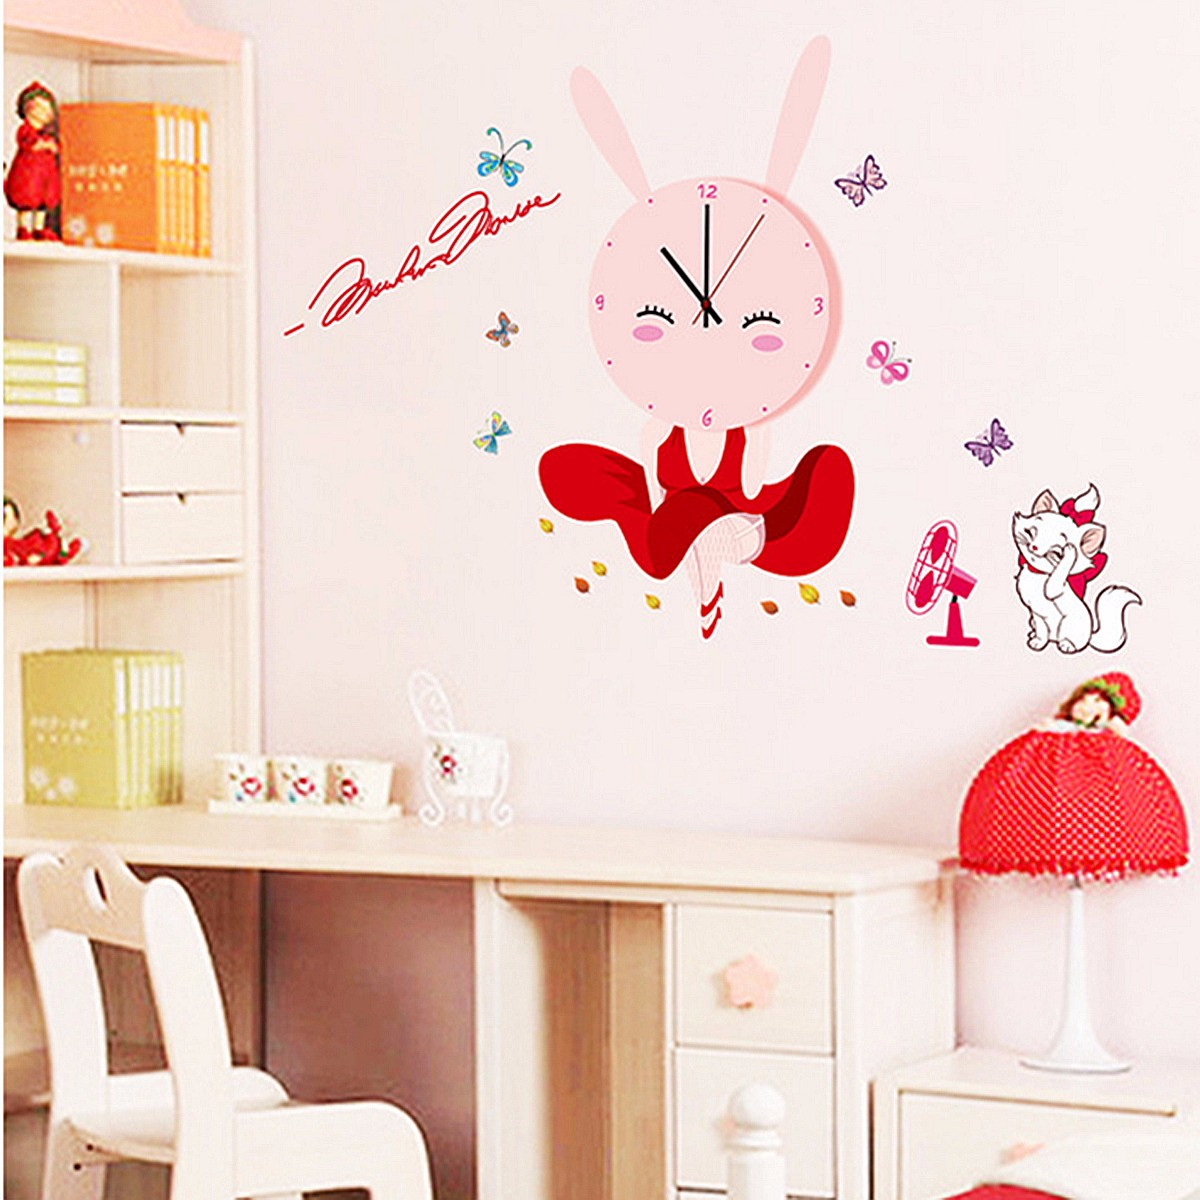 3d diy creative cartoon wall clock with wall stickers for for Room decor lazada